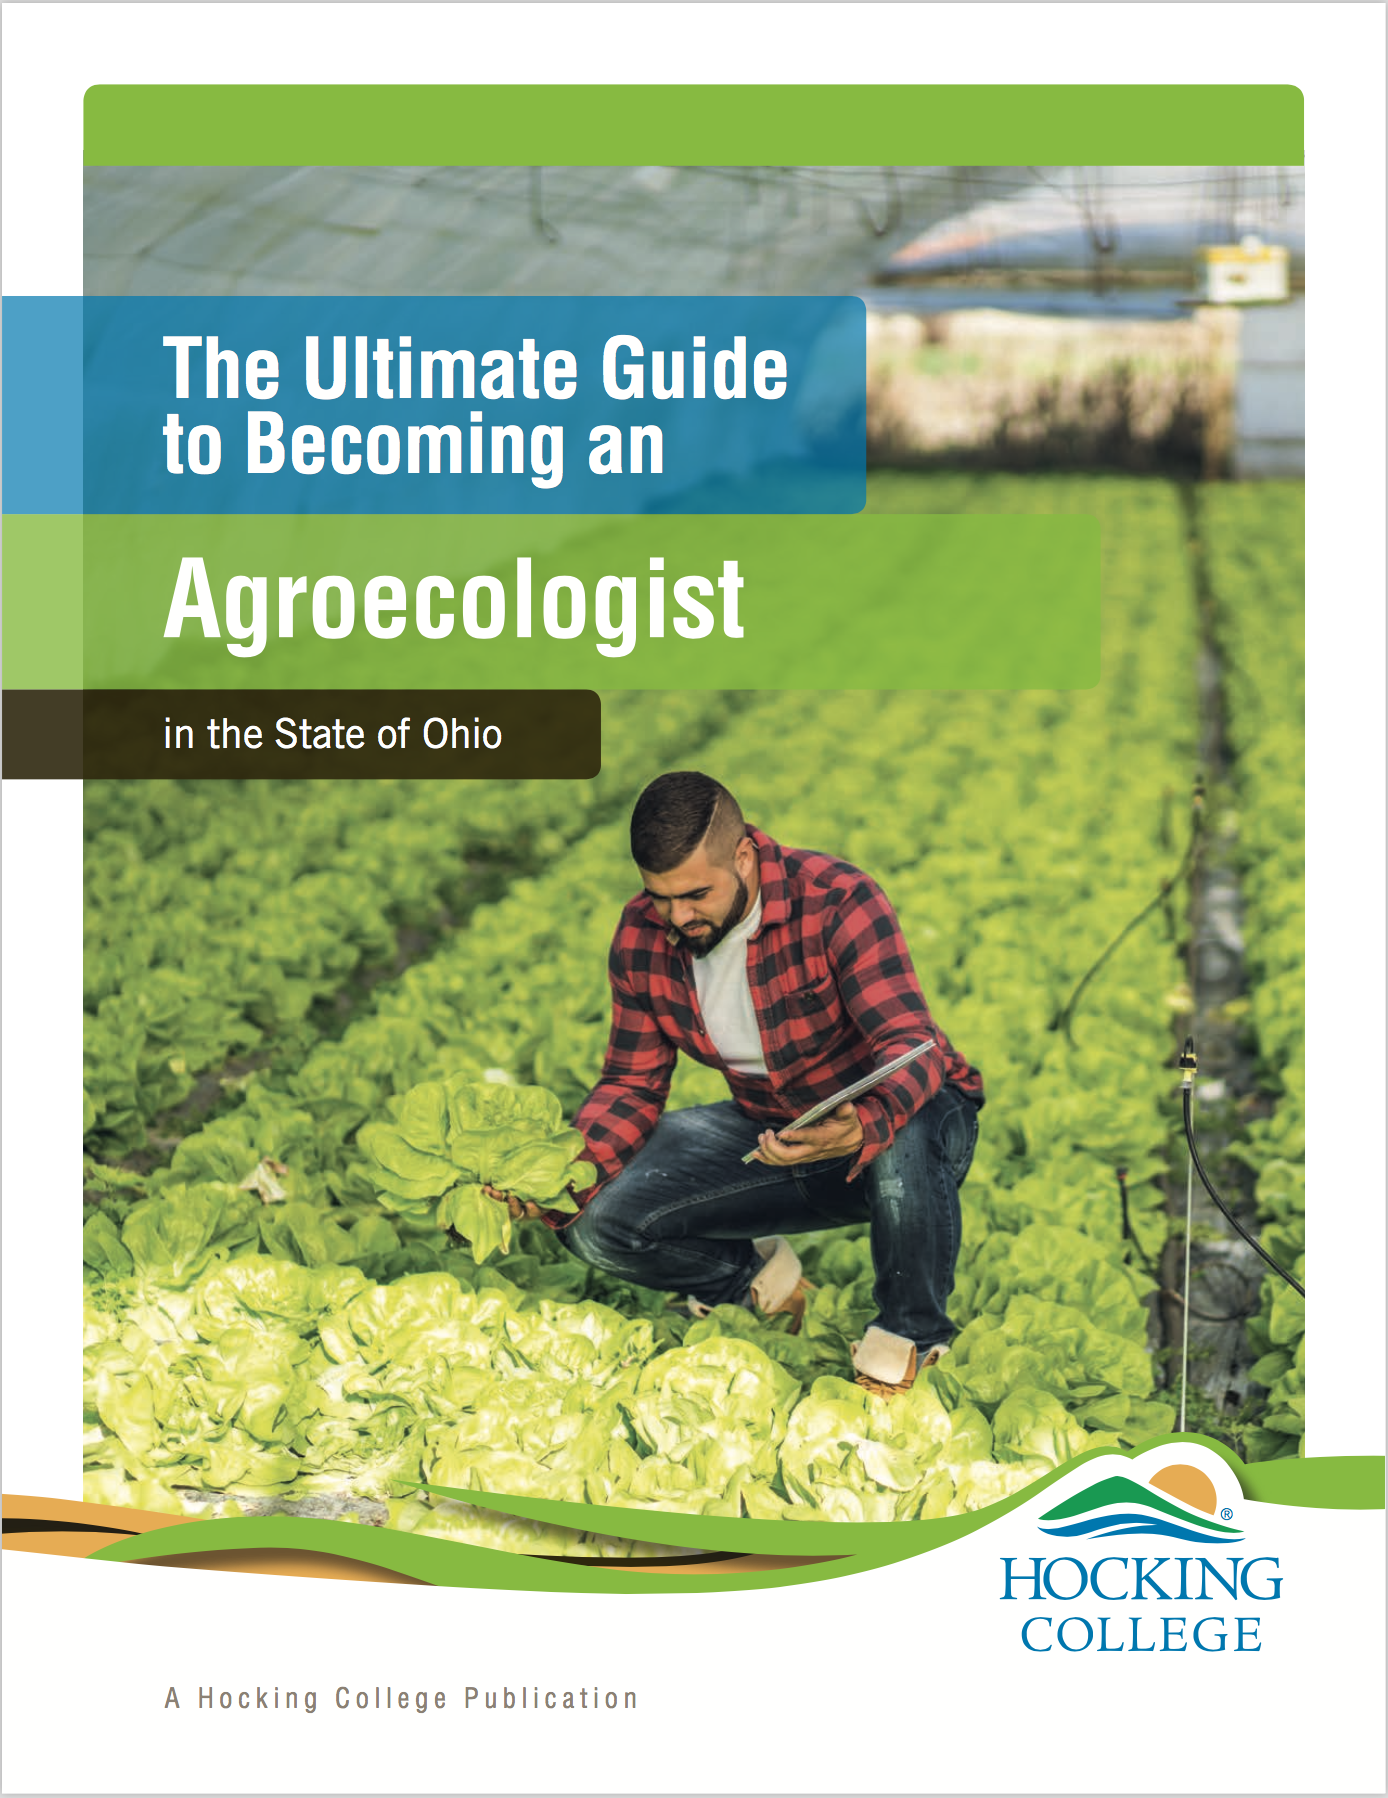 Find Your Ideal Career | Become an Agroecologist